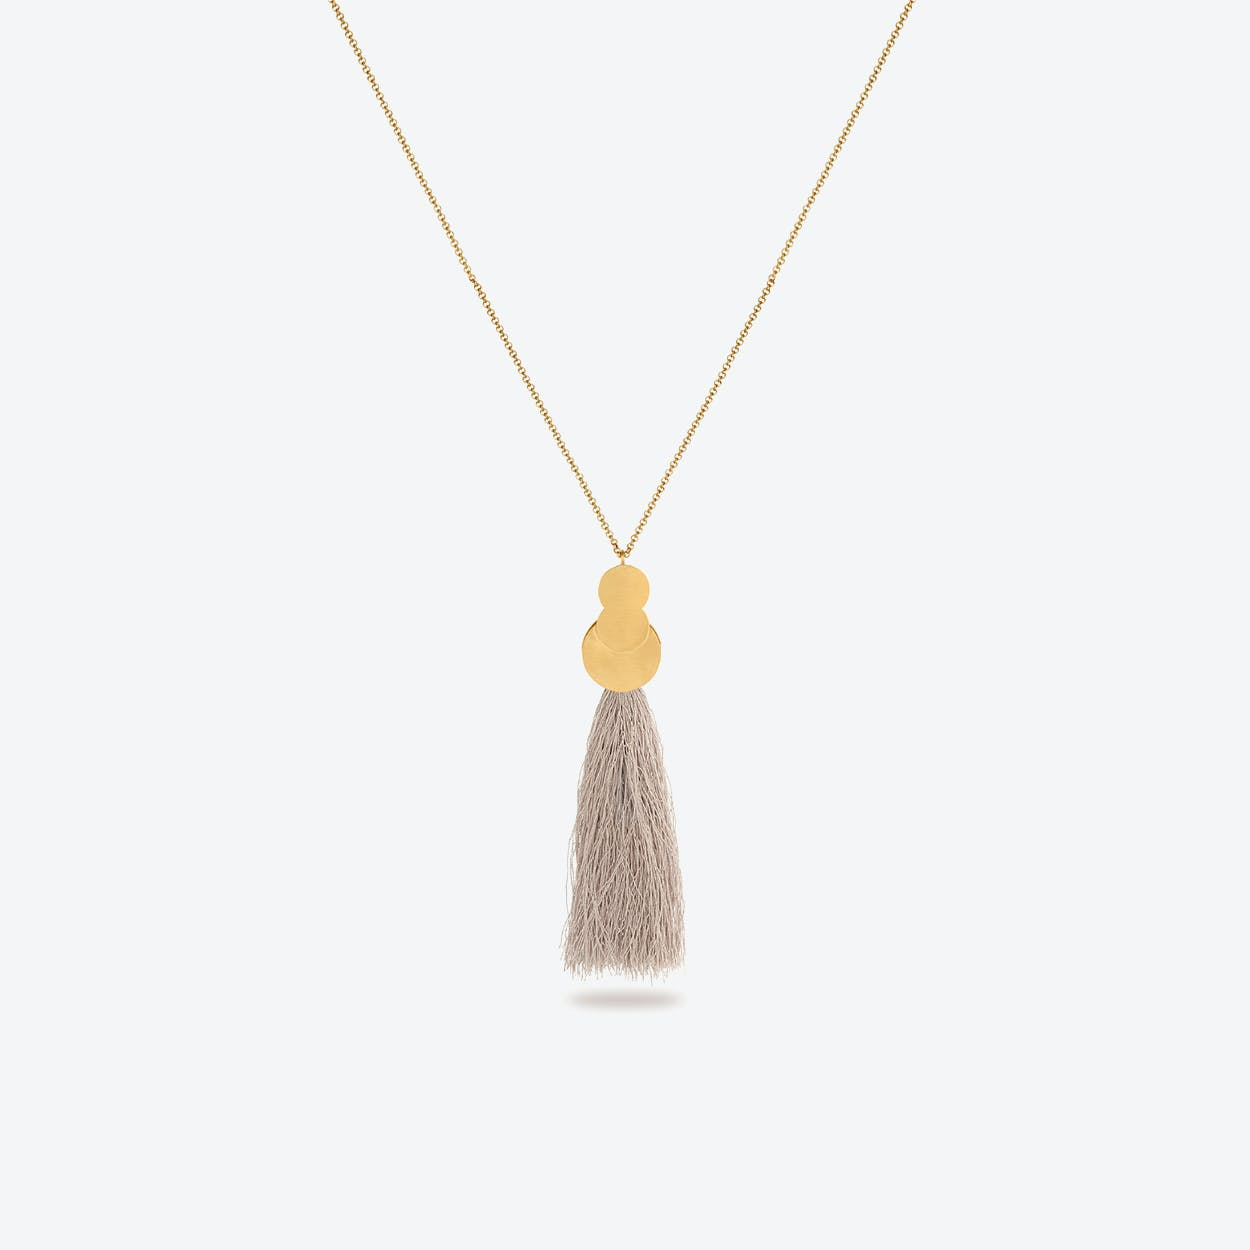 La Nuit Necklaces in Champagne